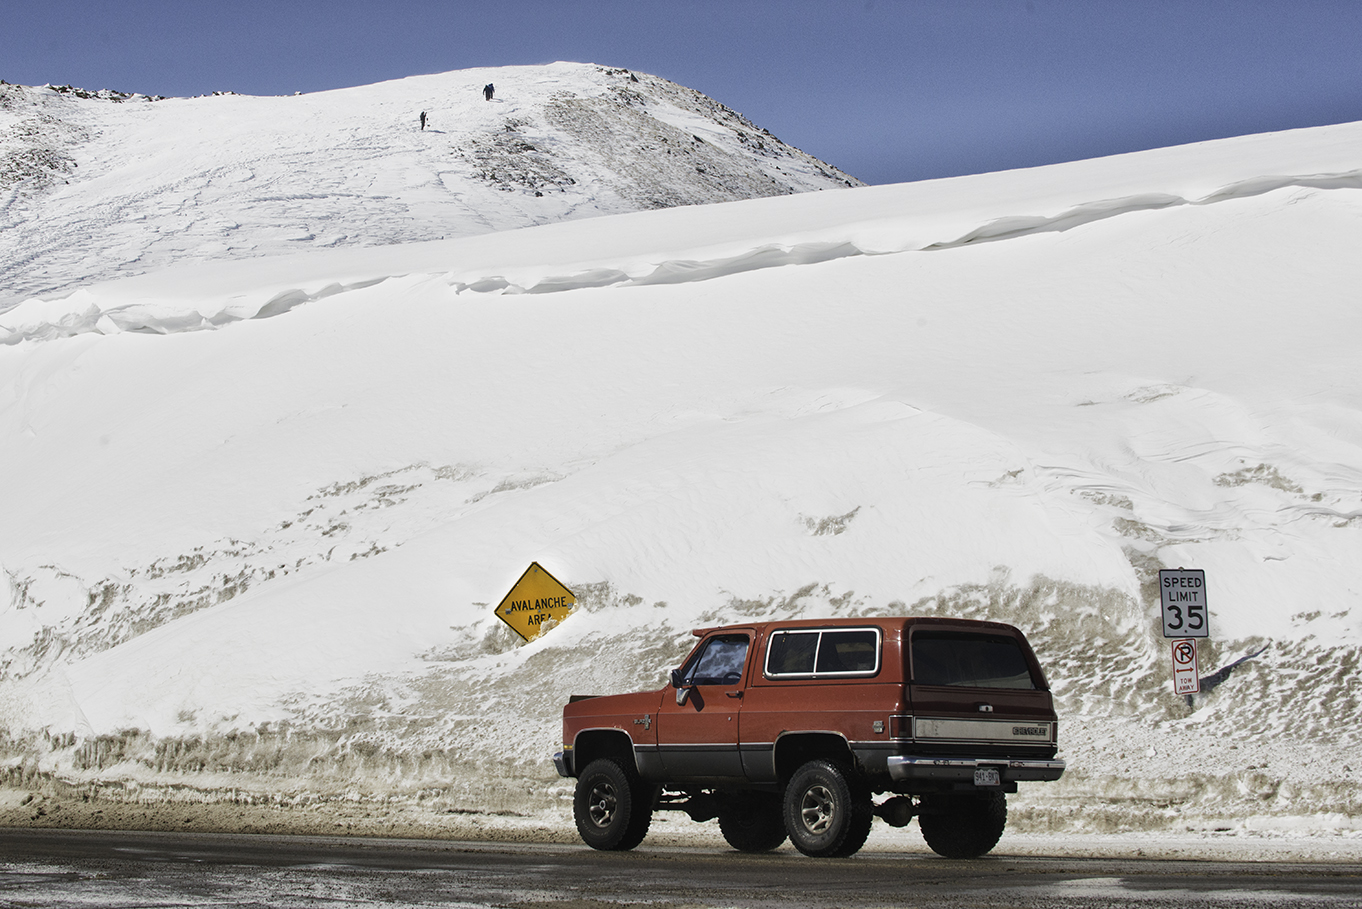 A Chevy Blazer crosses over the top of the pass in front of a buried Avalanche Area sign. Snowboarders can be seen up on the hill, hiking for a good spot to drop in.